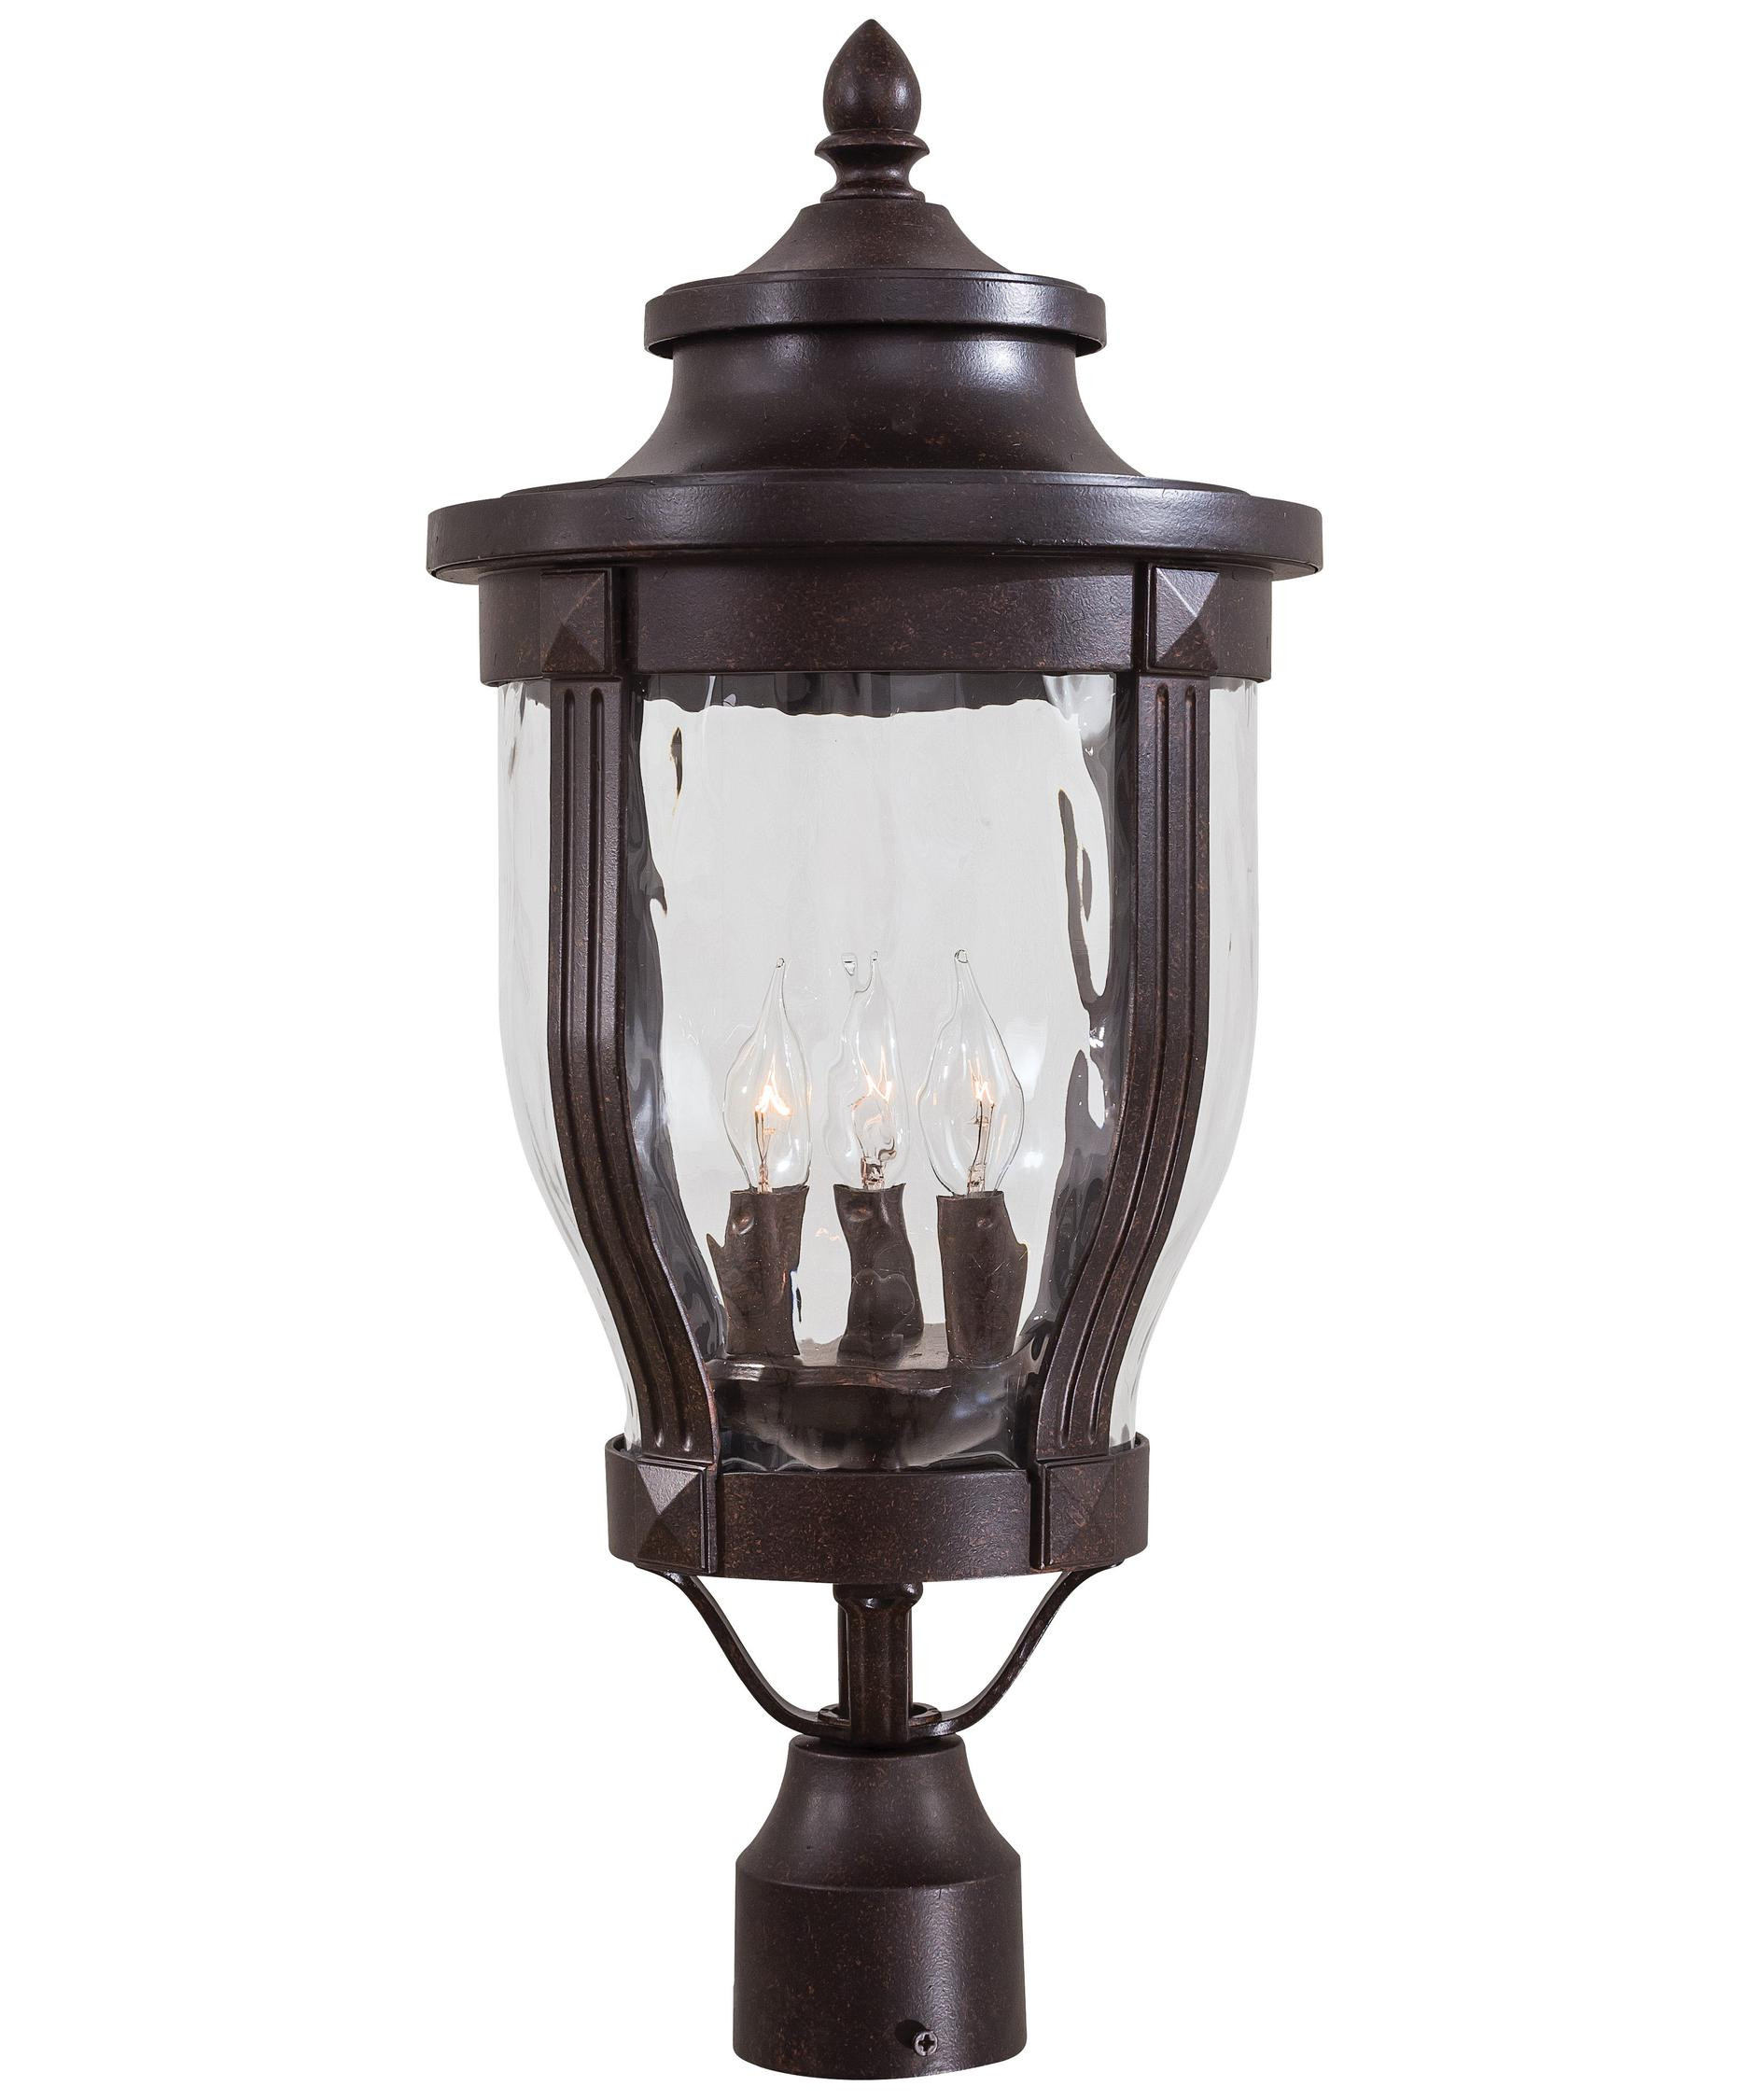 Best ideas about Minka Lavery Lighting . Save or Pin Minka lavery outdoor lights Now.